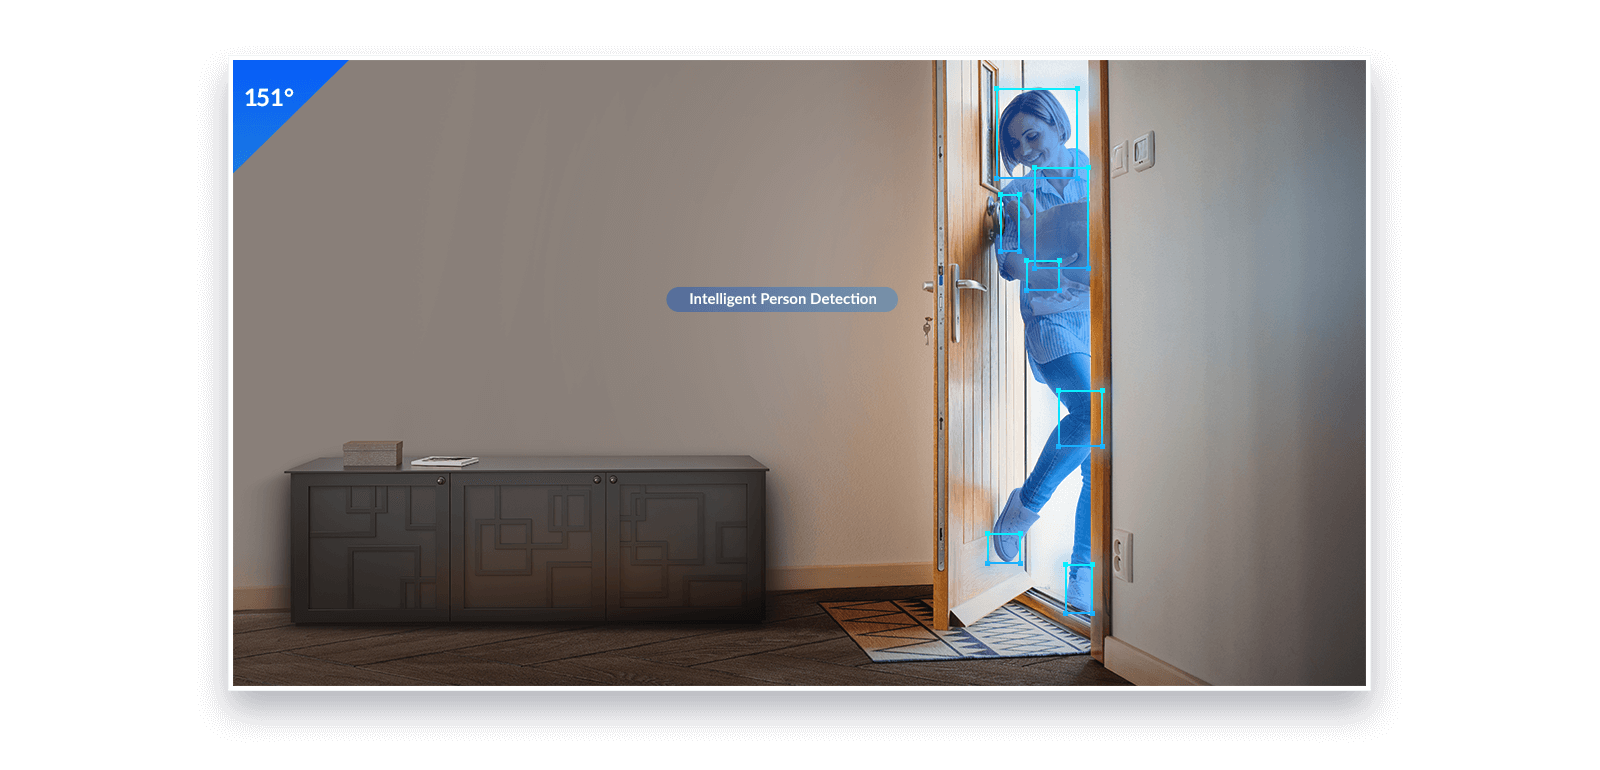 A woman's motion of entering through a door being detected by Person Detection mode